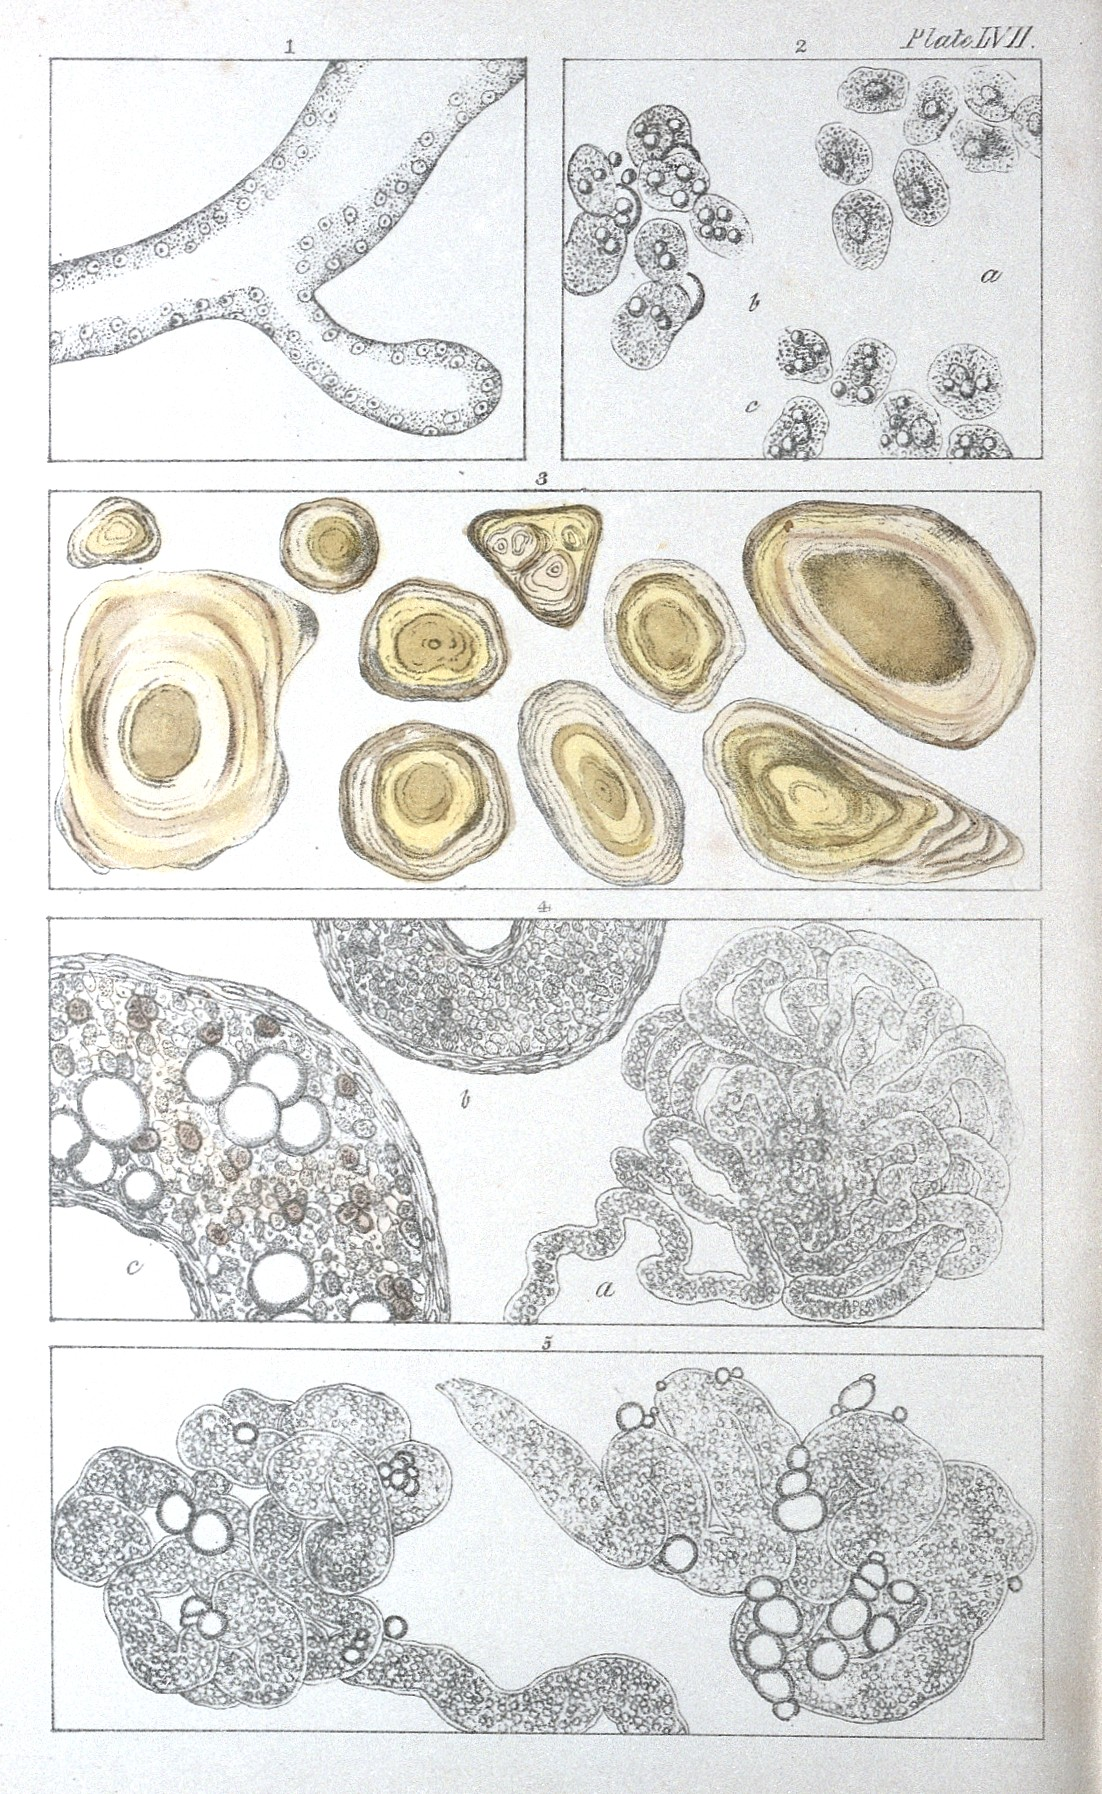 File:A. H. Hassall, The microscopic anatomy of the human body ...